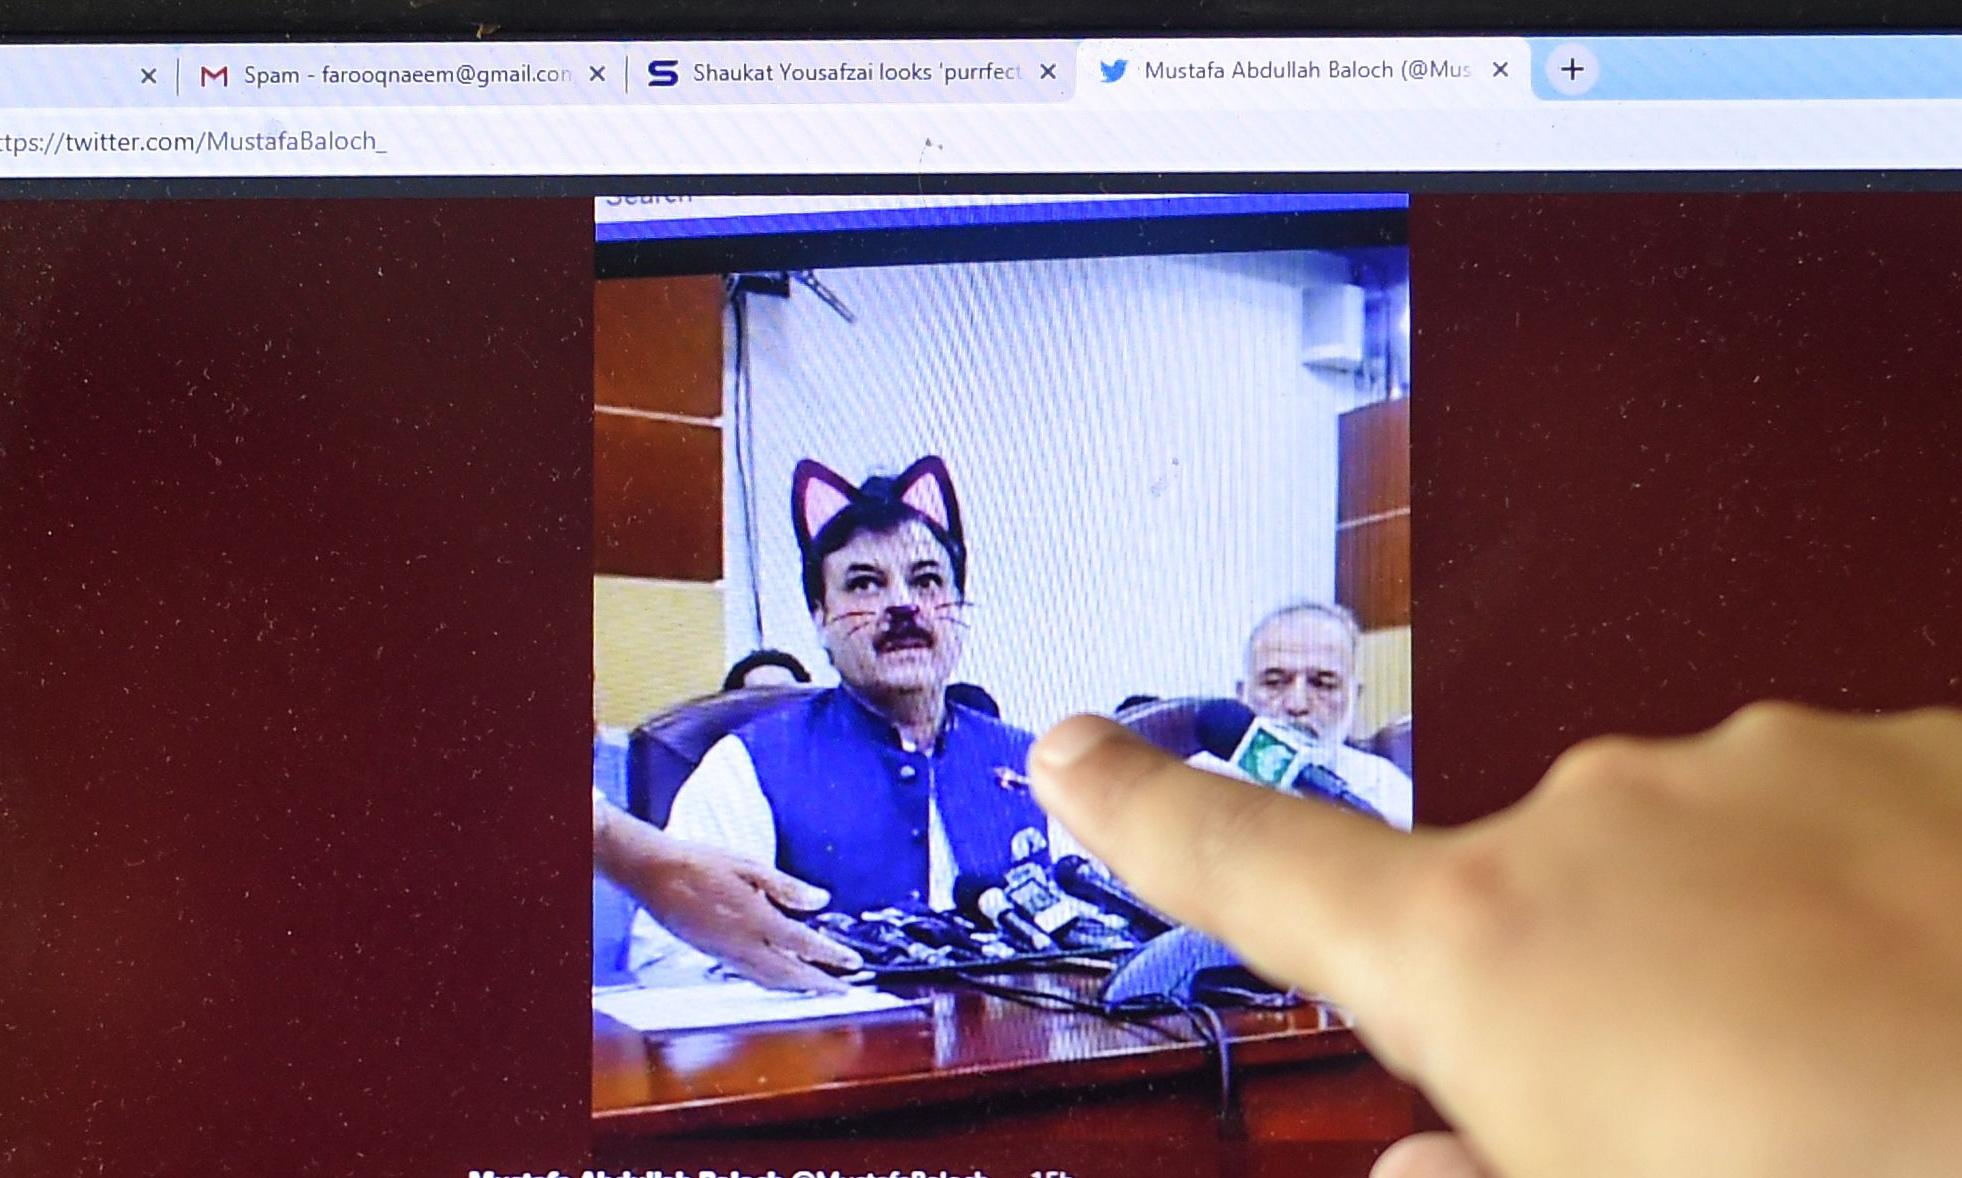 Accidental cat filter appears on Pakistan official's briefing